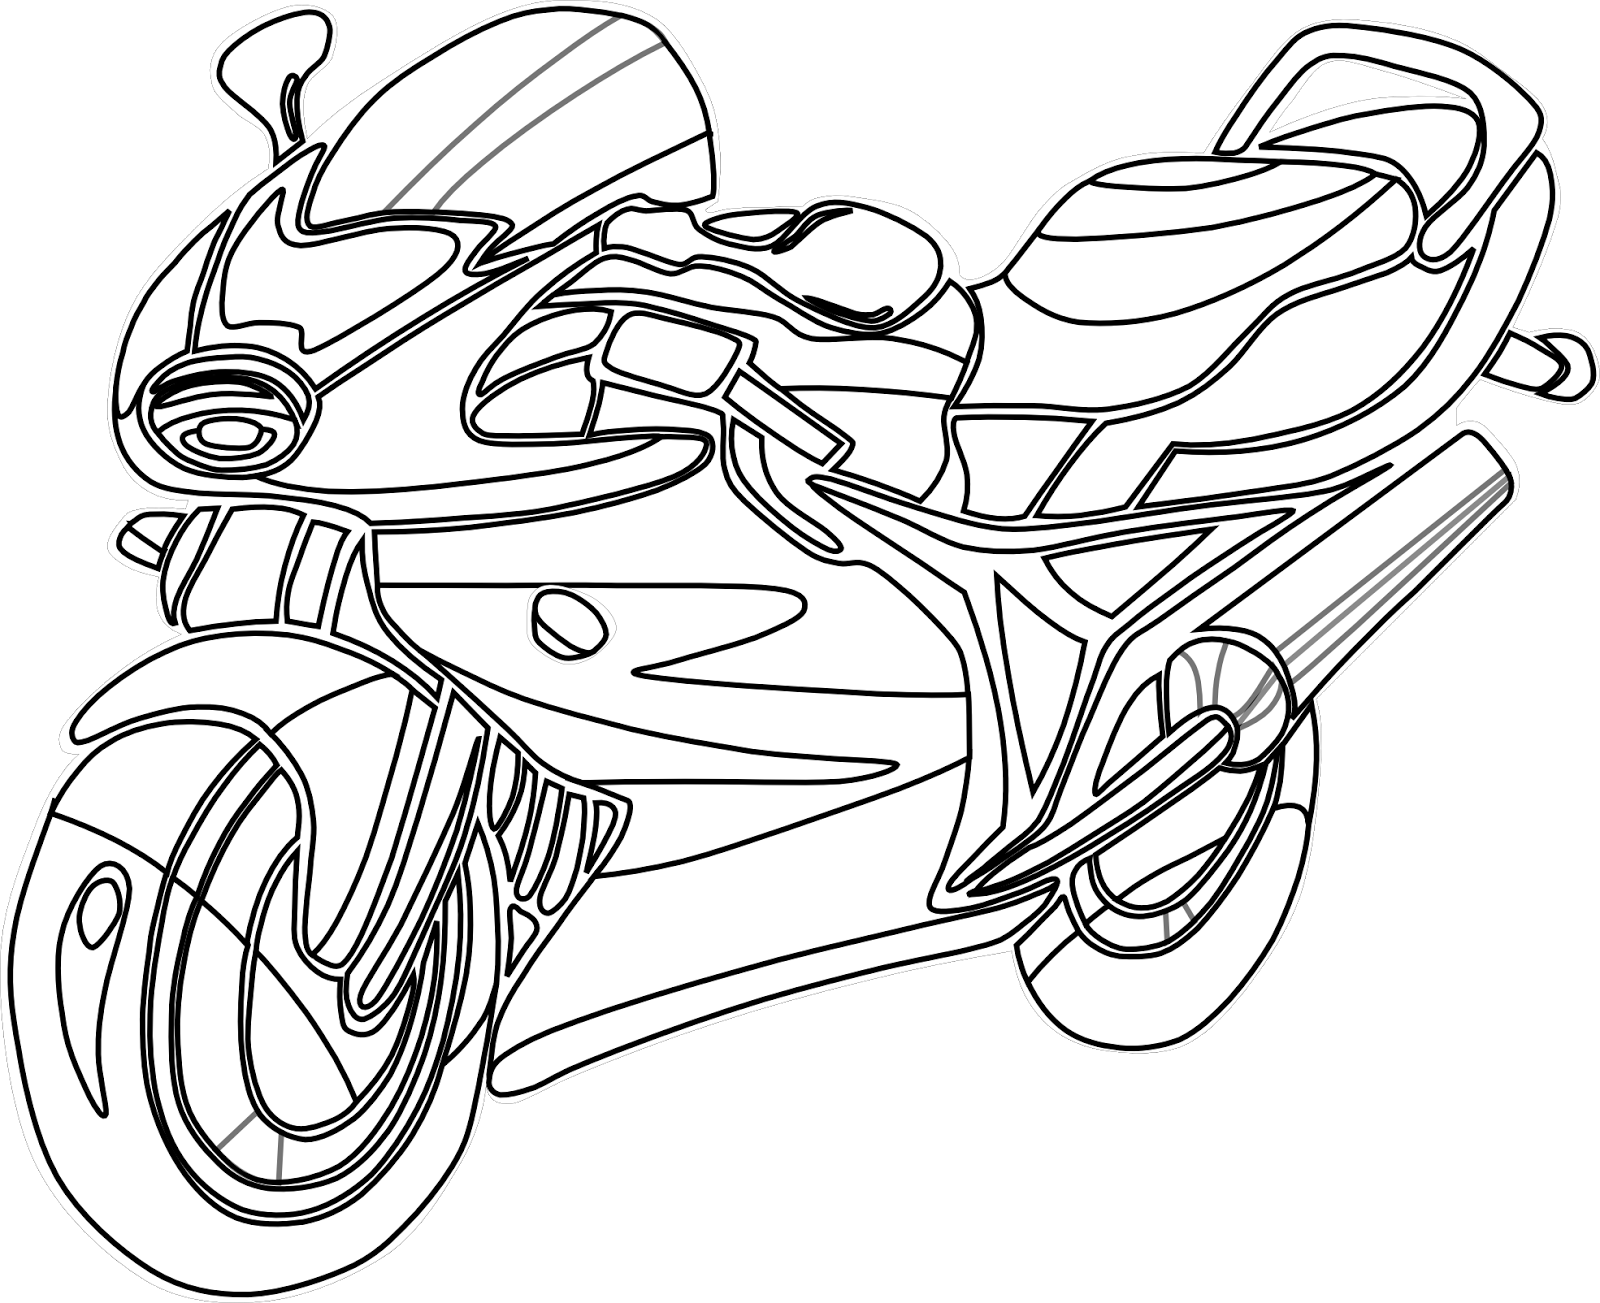 Motorcycle drawing images at. Engine clipart line art